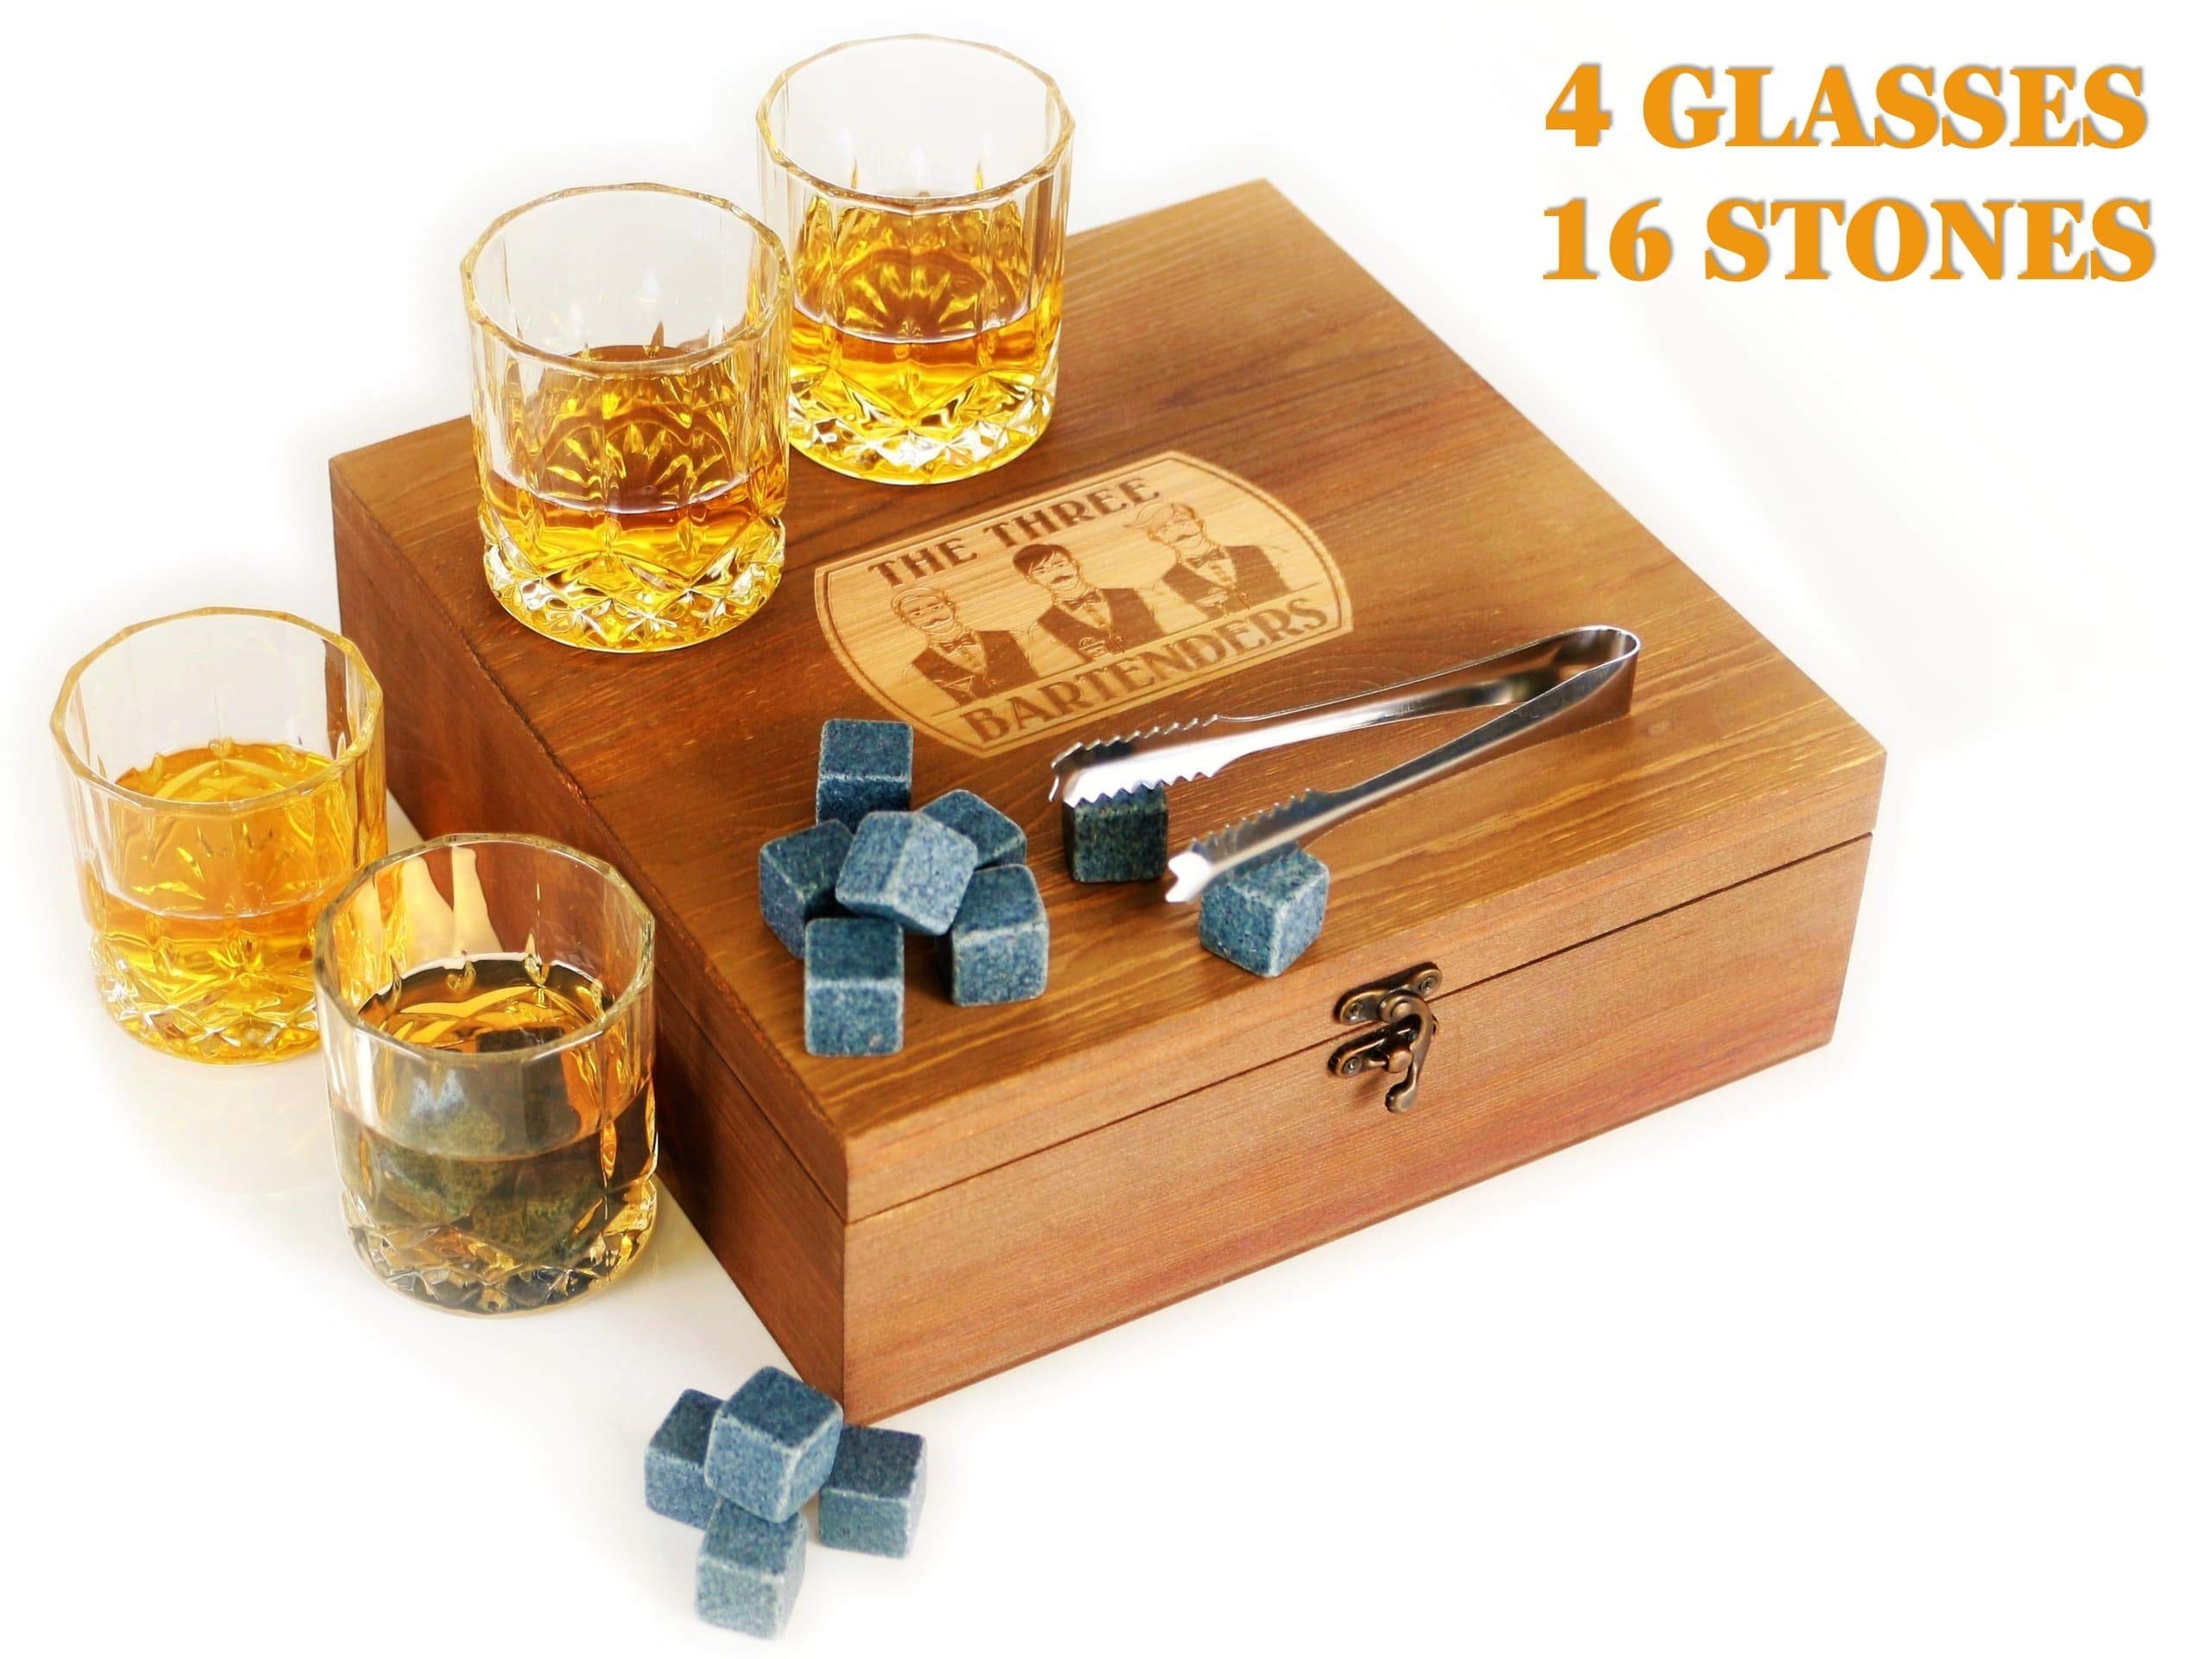 Whiskey Glasses and Stones Gift Set in Premium Wooden Presentation Box - 4 Extra Large Glasses, 16 Chilling Stones, Ideal Gift for Men, Fathers Day, Brother Gift (7.7) by The Three Bartenders (Image #1)